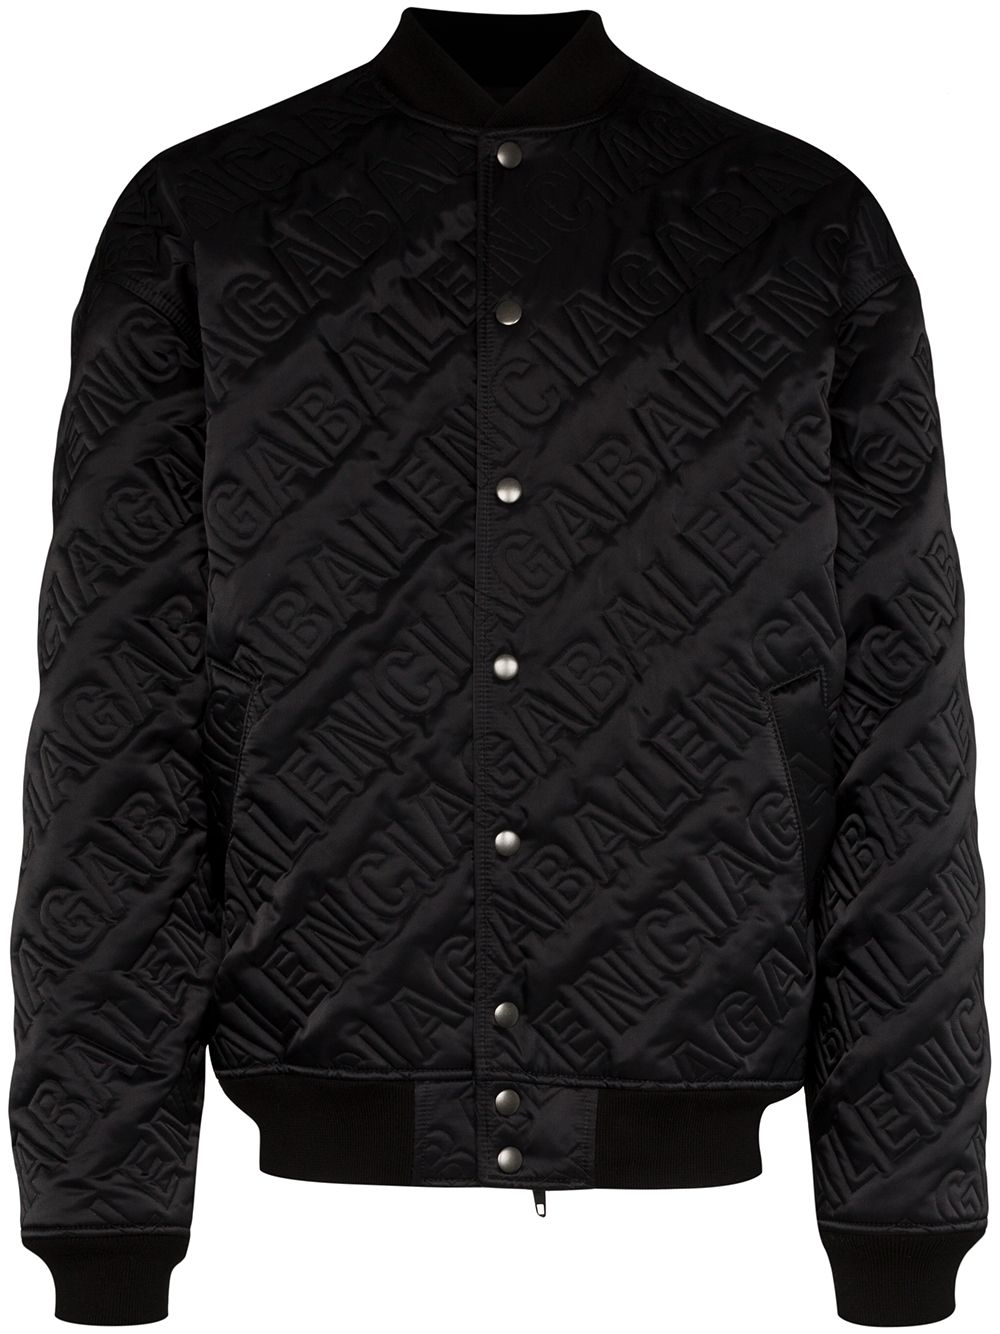 BALENCIAGA quilted embroidered logo bomber jacket black